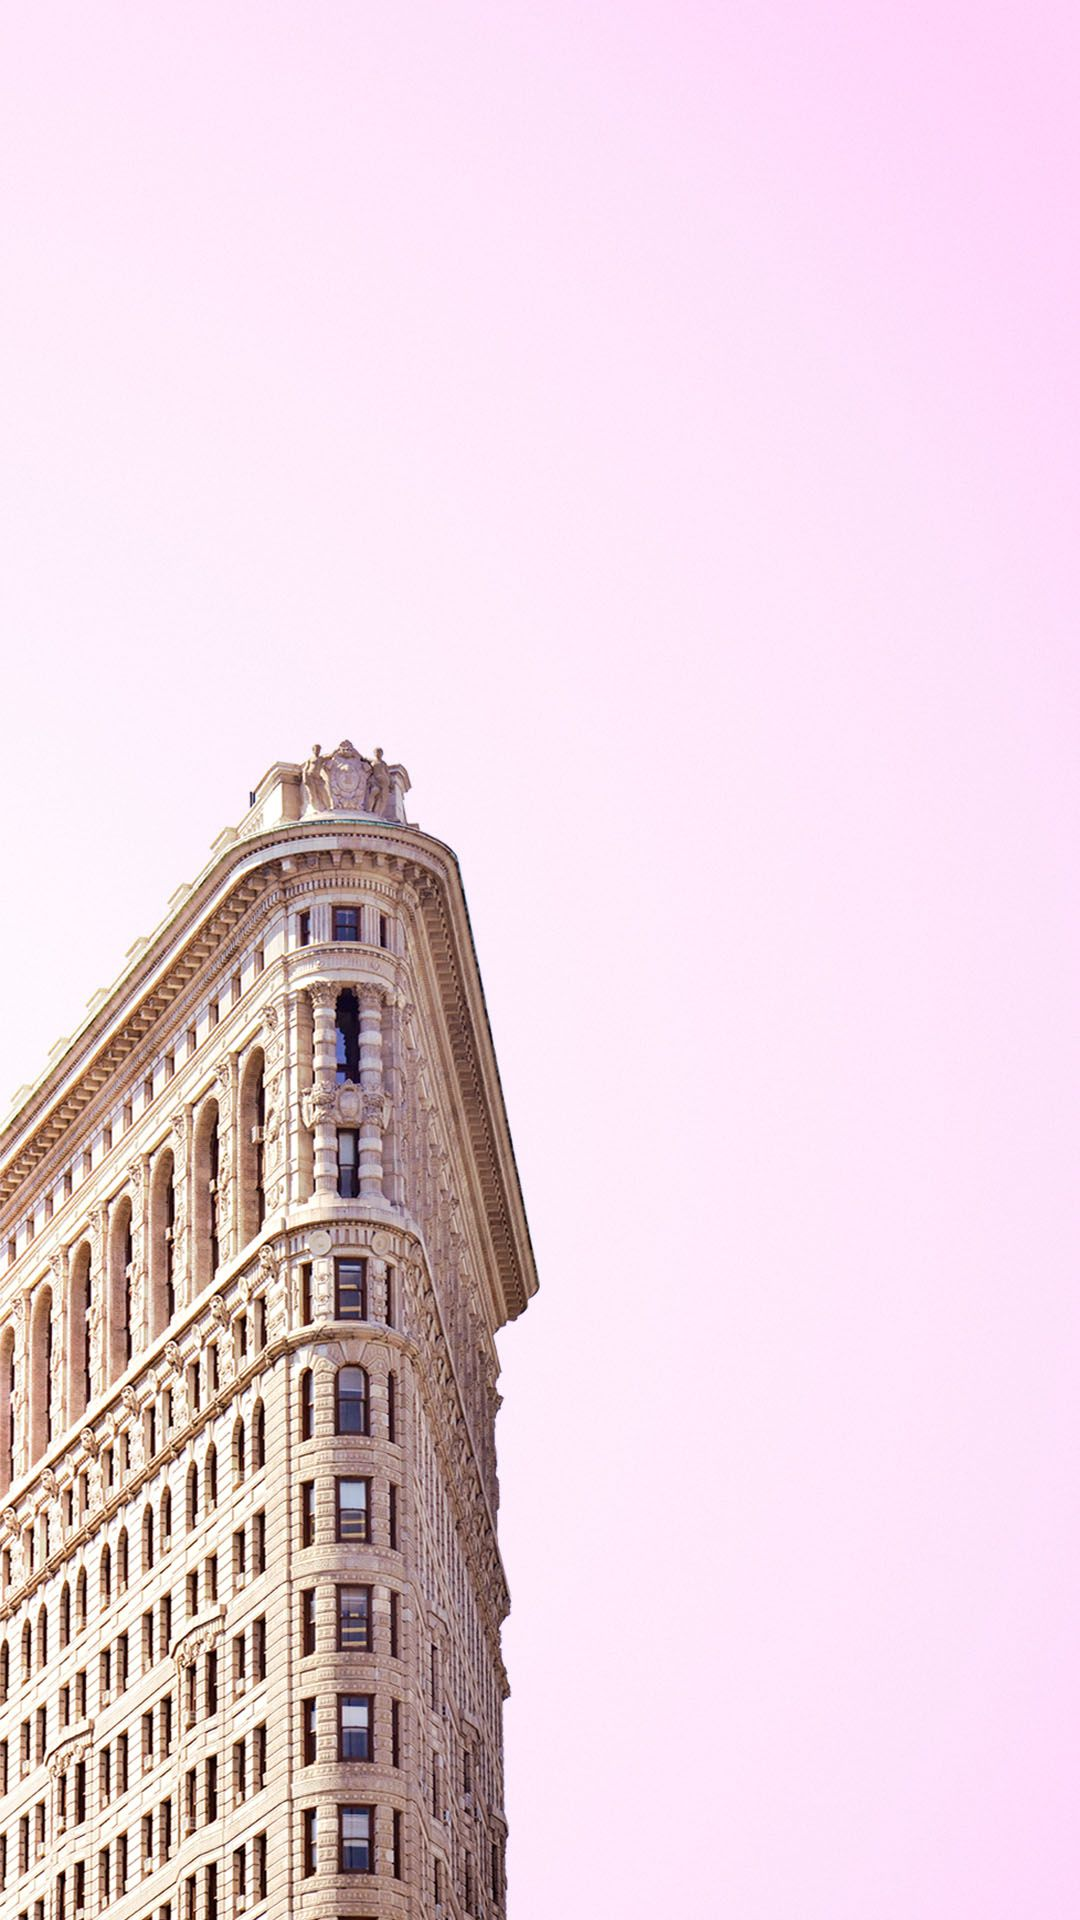 New York Wallpaper Pastel For Your Phone Screen